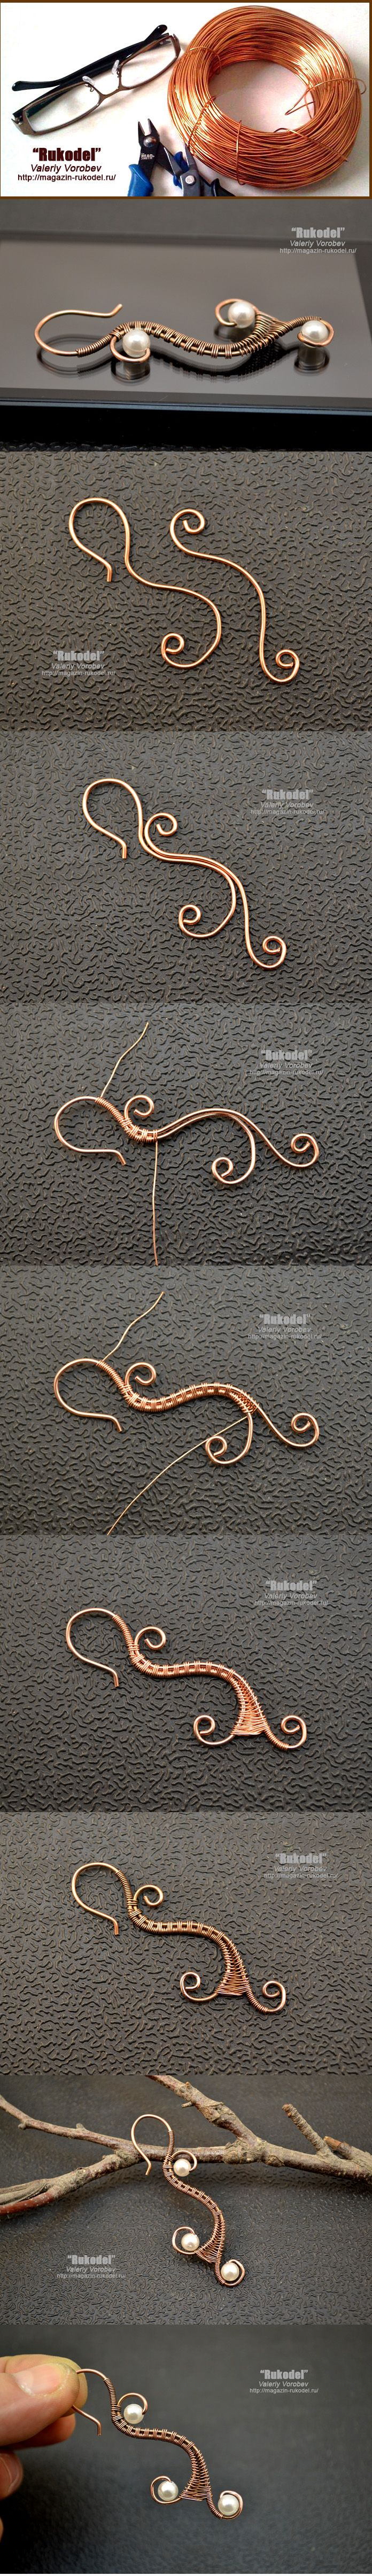 2193 best images about Wire Jewelry And Tutorials on Pinterest ...